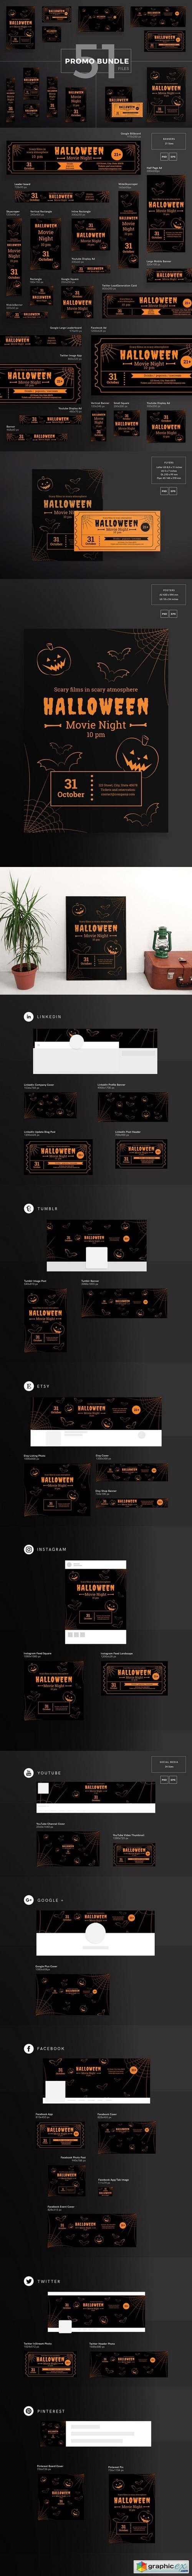 Promo Bundle | Halloween